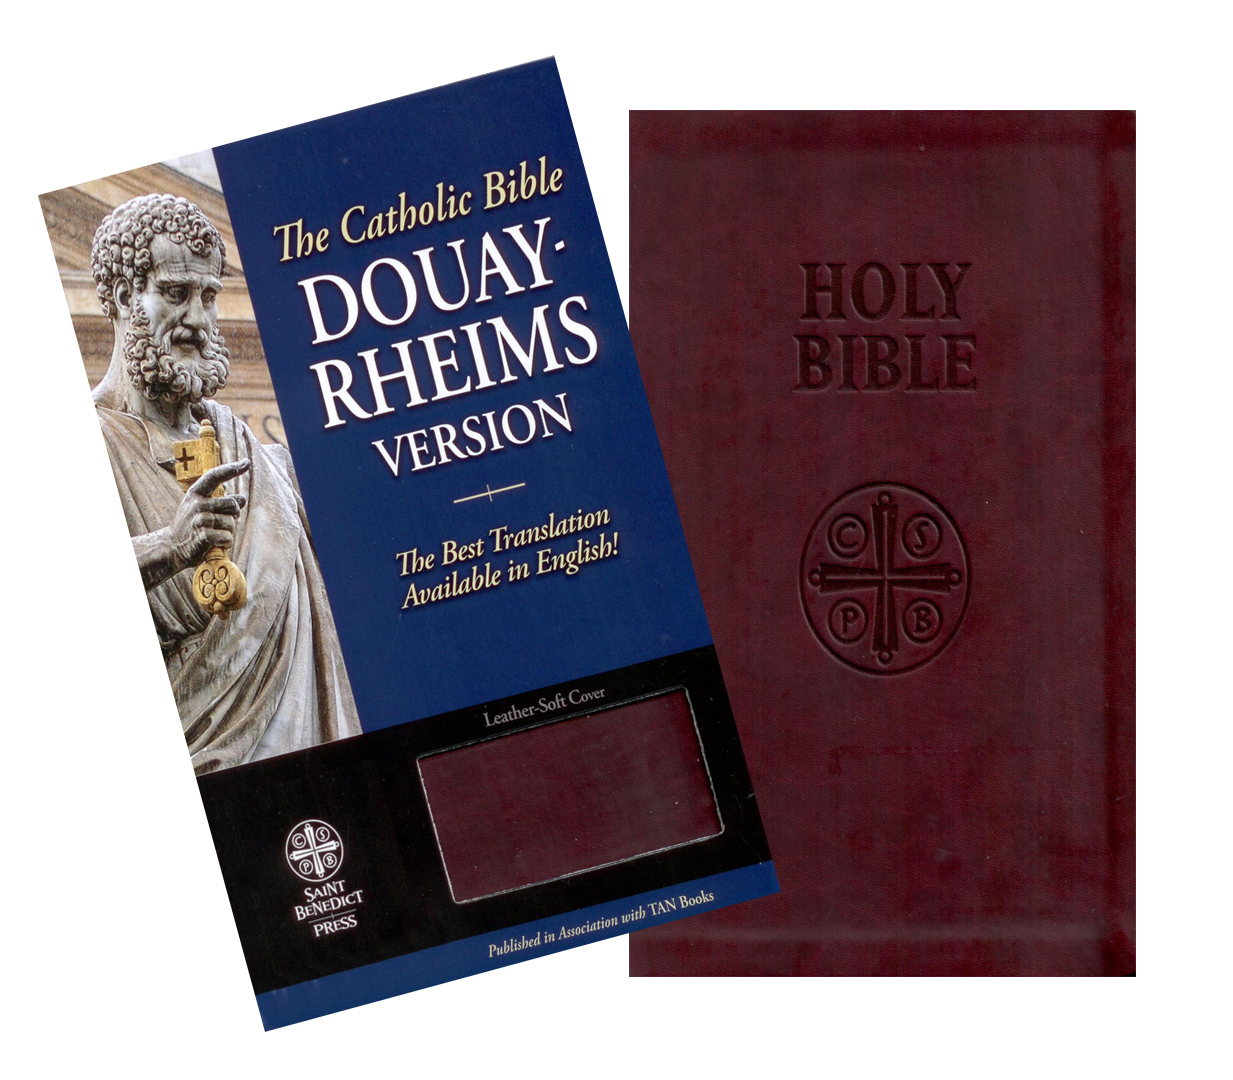 The Douay-Rheims Catholic Bible Ultra-Soft Burgundy Cover SB2025